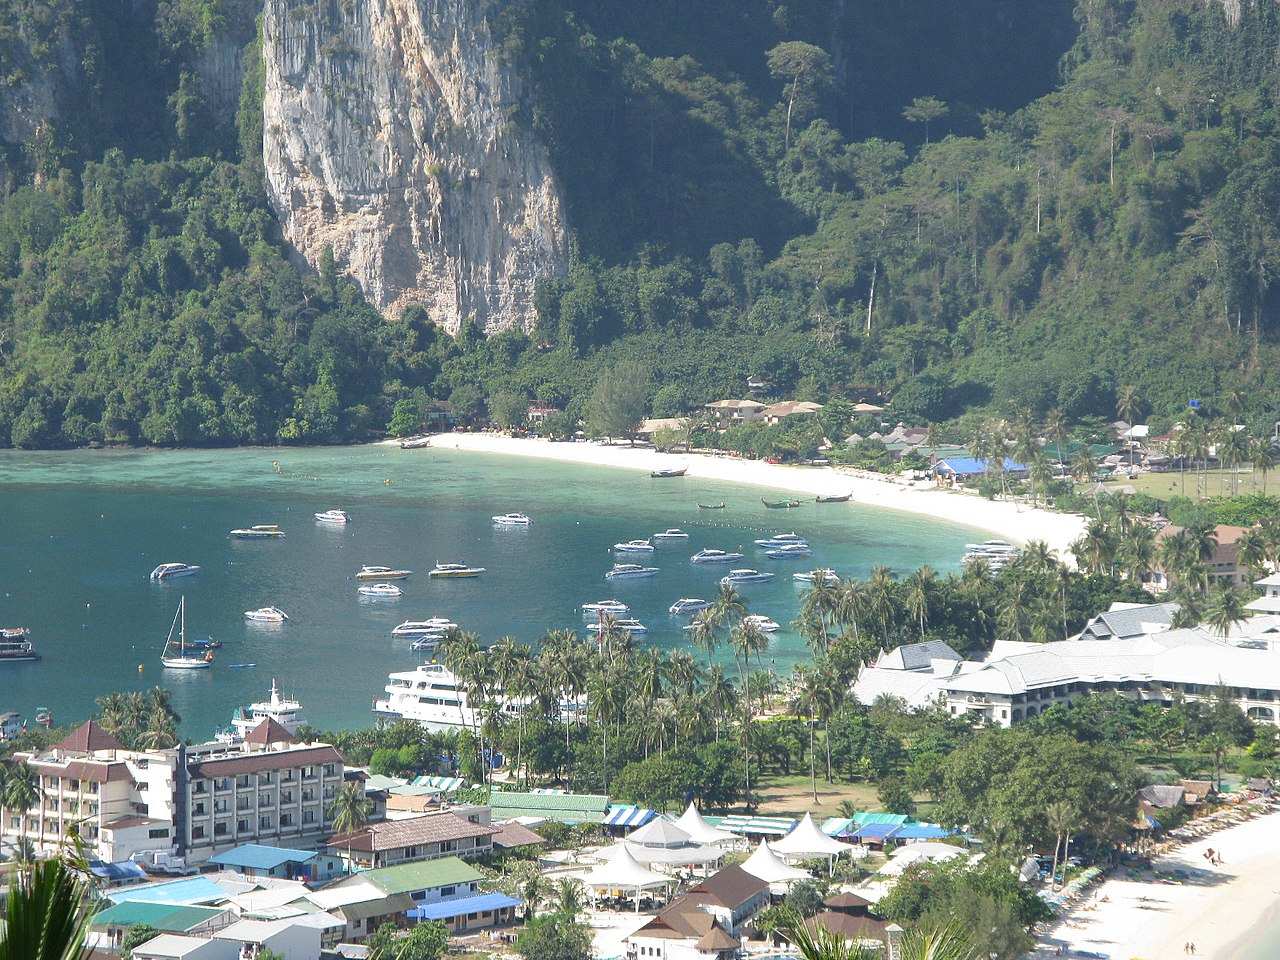 Amazing Thing To Do In Phi Phi-Go For A Hike To The Phi Phi Viewpoint